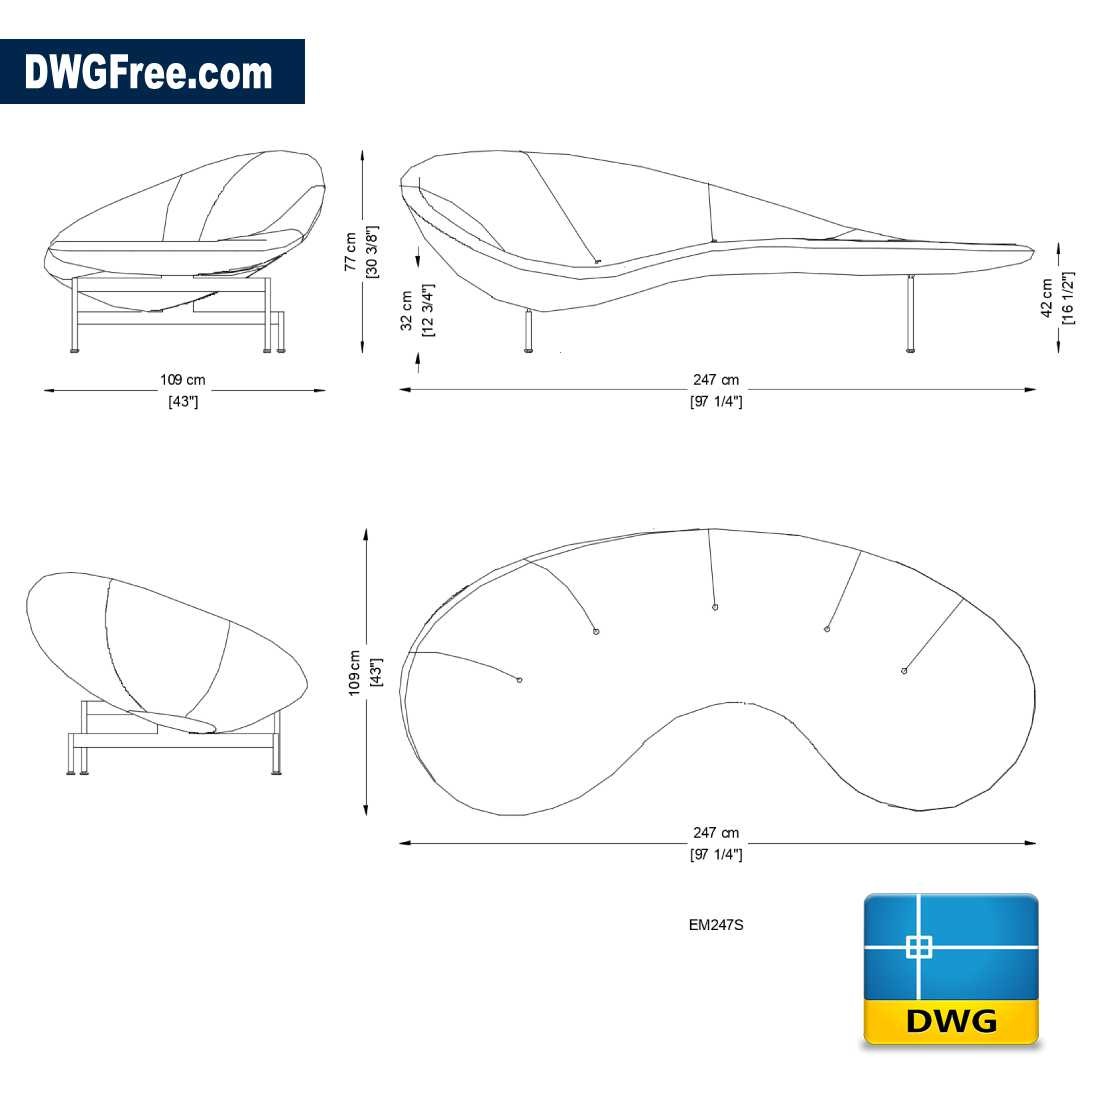 Sofa Eda Mame Dwg Drawing In Autocad 2d Free Dwgfree